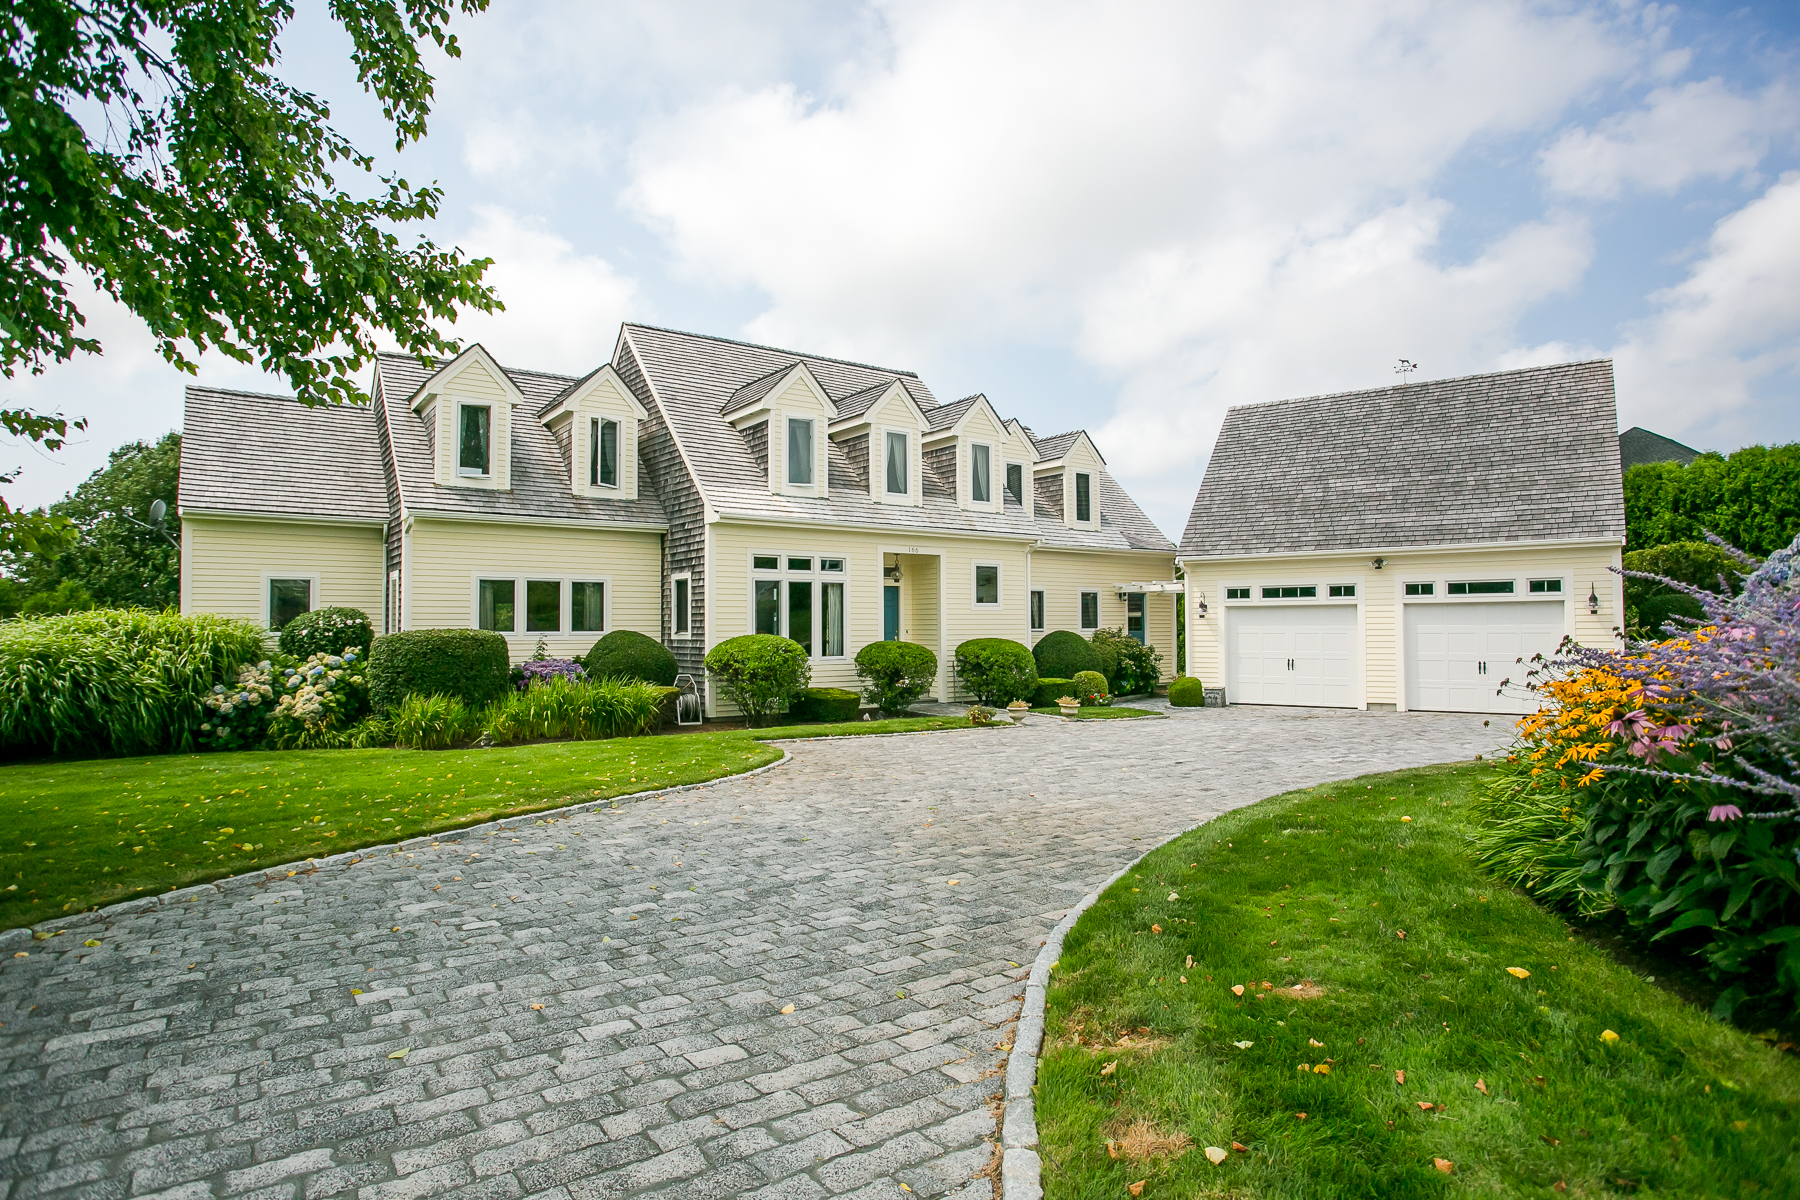 Single Family Home for Sale at Unique Kings Grant Property 166 Thayer Drive Portsmouth, Rhode Island 02871 United States